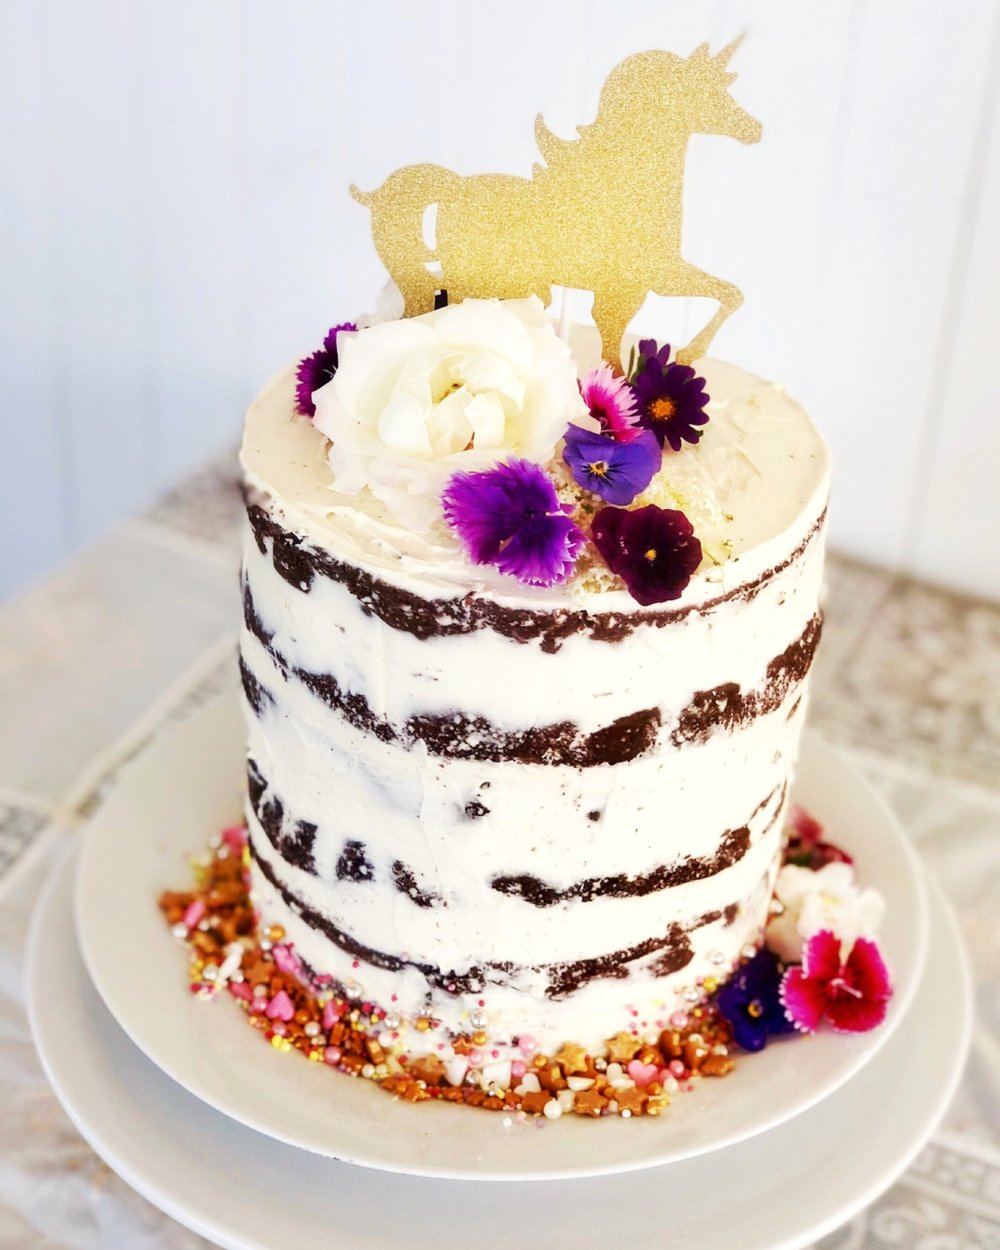 CELEBRATION CAKE$100 - Our chef can customise a beautiful semi-naked style celebration cake adorned with fresh flowers to provide a decadent finale to your child's party. Serves up to 30 people.